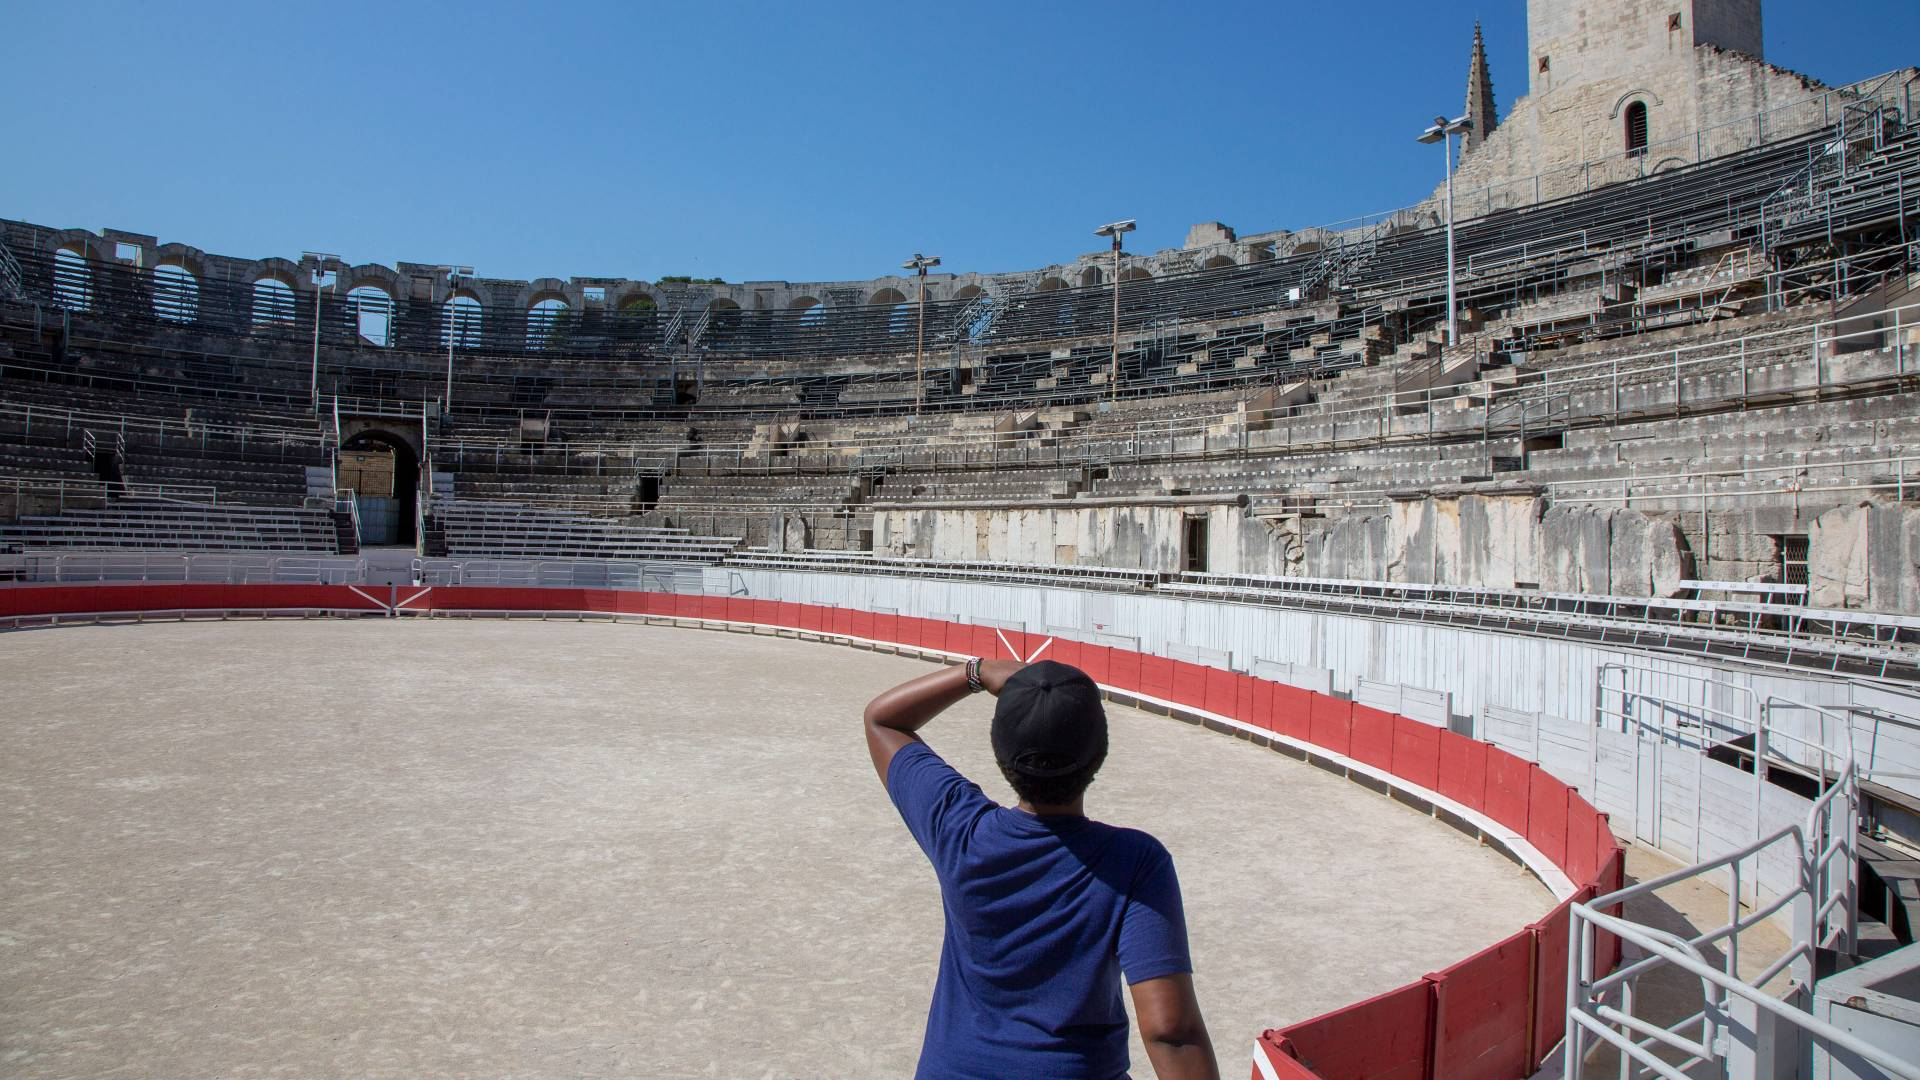 Student looking at amphitheater in Arles, France